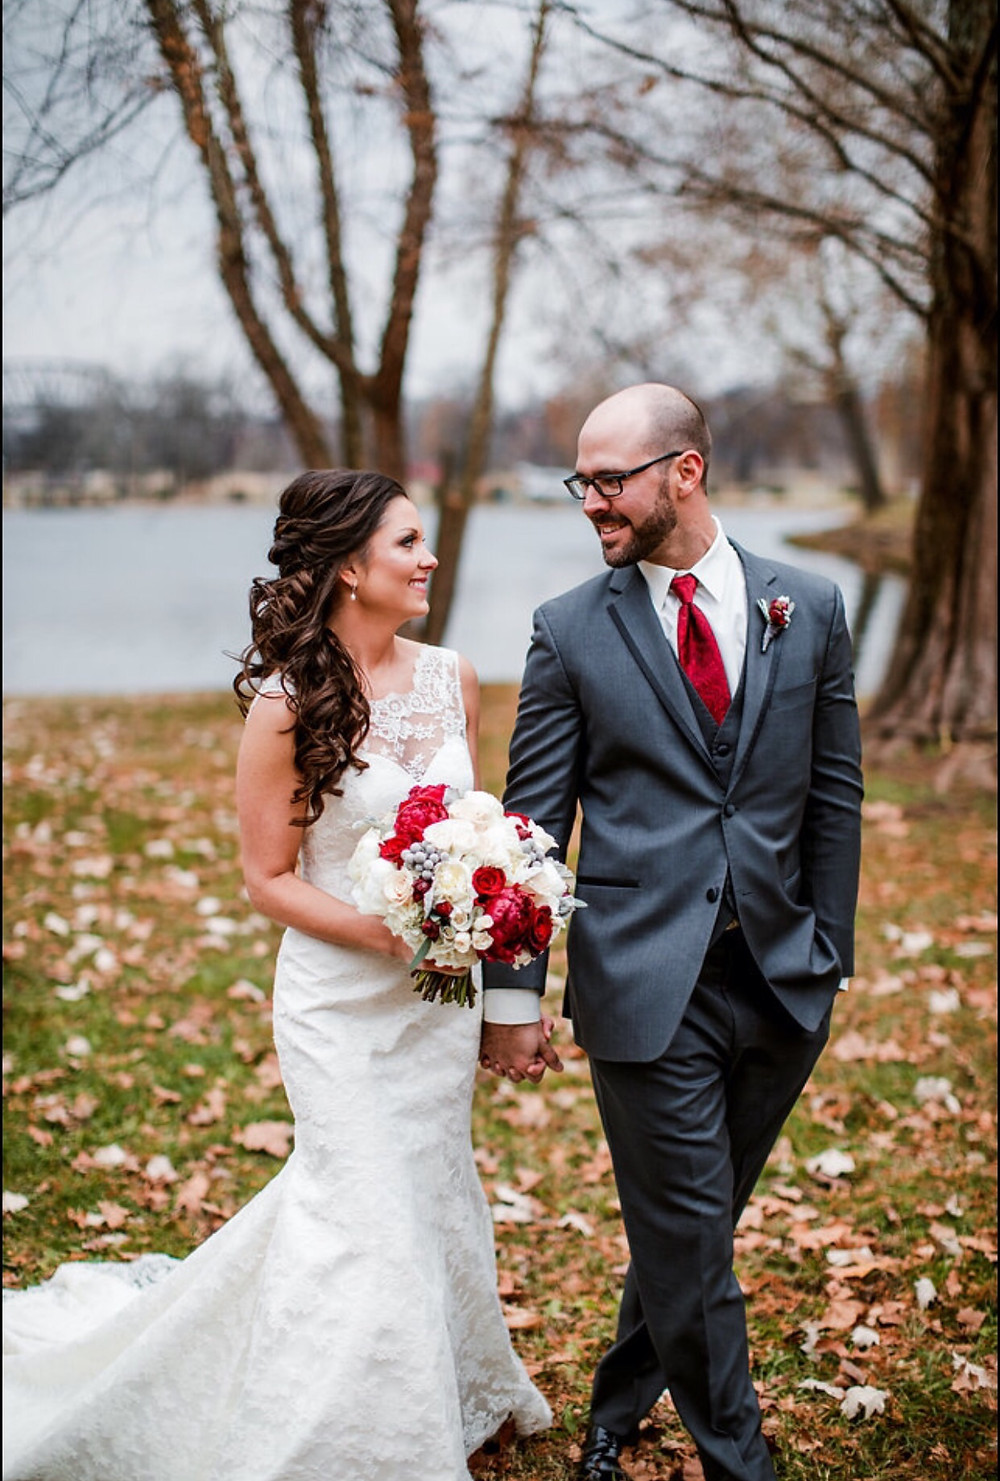 Bride with red flowers - Nashville, TN